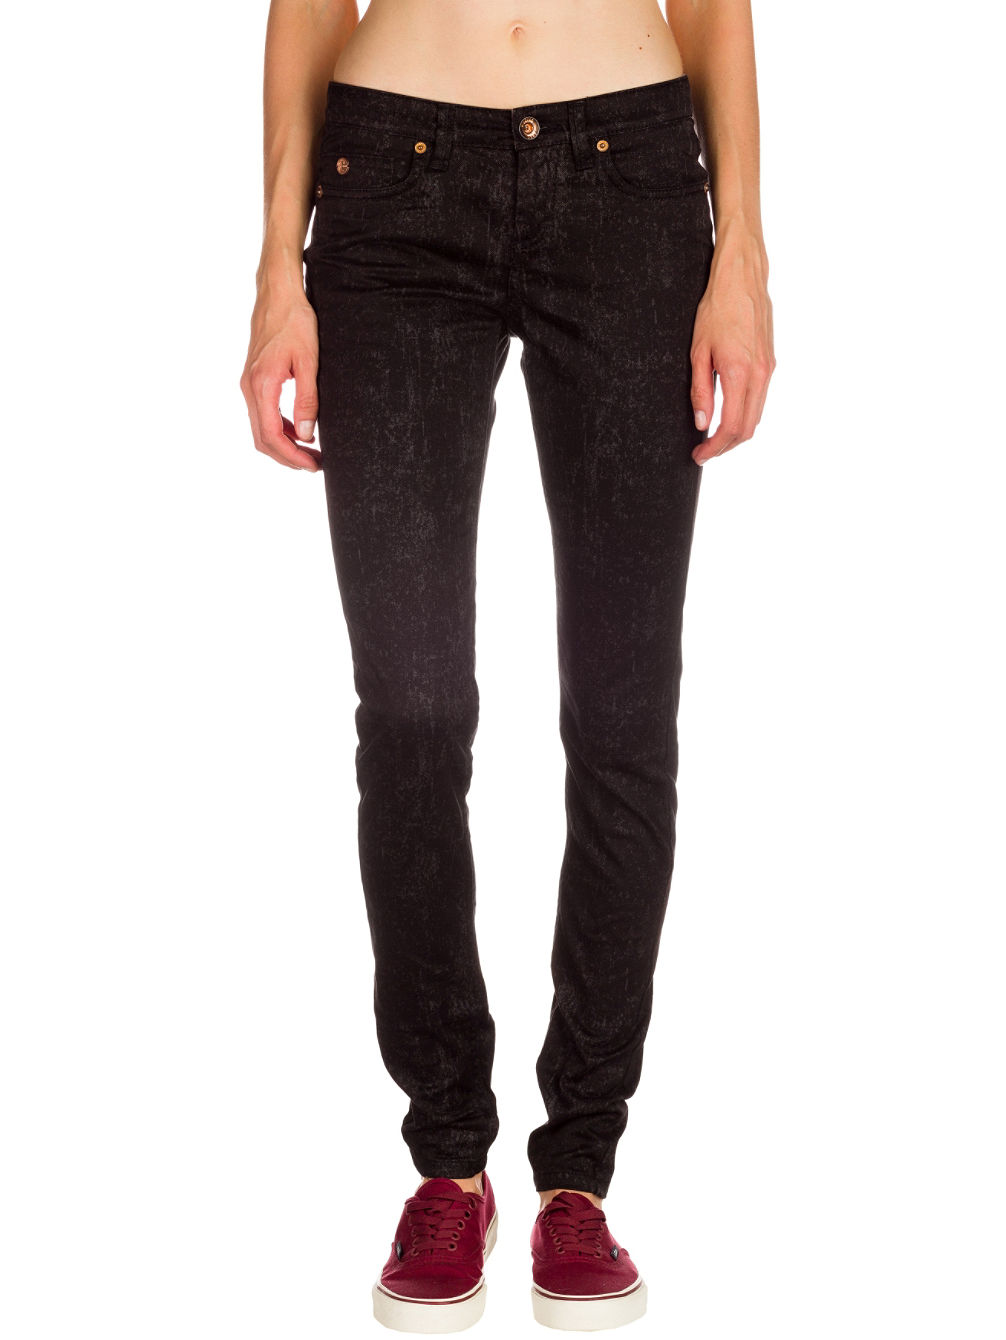 O'Riginals 5-Pocket Jeans